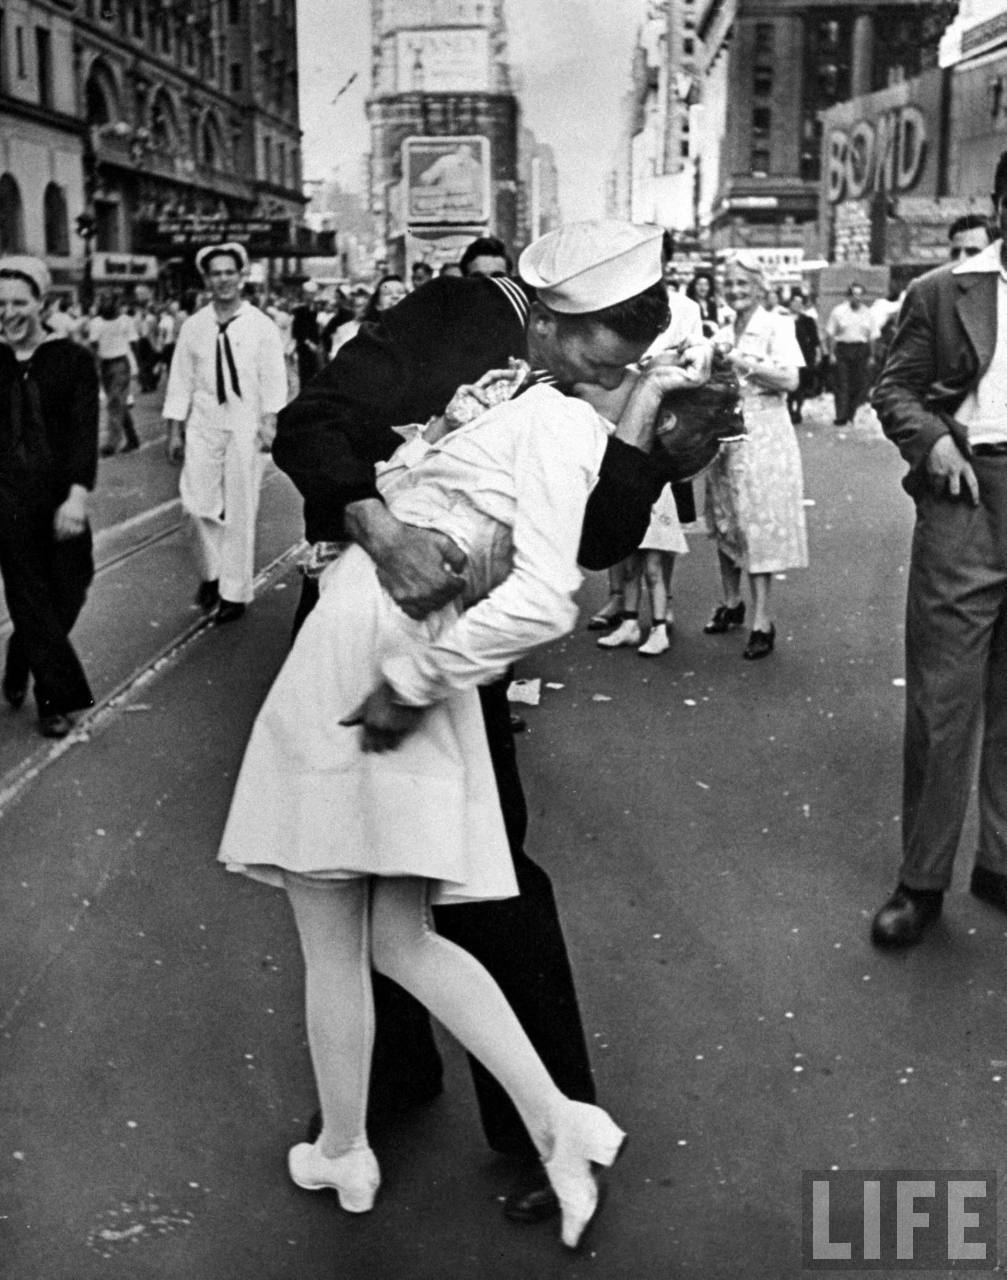 "Alfred Eisenstaedt: A jubilant American sailor clutching a white-uniformed nurse in a back-bending, passionate kiss as he vents his joy while thousands jam Times Square to celebrate the long awaited-victory over Japan, New York, 1945.   ""In Times Square on V.J. Day, I saw a sailor running along the street grabbing every girl in sight. I was running ahead of him with my Leica looking back over my shoulder. Then suddenly, in a flash, I saw something white being grabbed. I turned around and clicked the moment the sailor kissed the nurse…I took exactly four pictures. It was done within a few seconds.""   This is the most famous picture that Alfred Eisenstaedt ever took. This image has been reproduced countless times and resulted from Eisie's instinct for what would make a good photograph. He recounted that he had followed the sailor who was ""running along the street grabbing any and every girl in sight. Whether she was a grandmother, stout, thin, old, didn't make any difference."" The picture, that of a sailor in his blue uniform kissing a nurse in her white uniform, with a passion usually reserved for lovers, became synonymous with the mood of celebration the country felt at the war's end. Even those who did not know his name, knew his picture. Eisenstaedt was almost 47-years-old when he took that picture. He got it as he got many of his pictures-persistence rather than planning. He often noted that he had learned it was the reaction to an event that created the best picture, rather than the event itself. That day in August of 1945, Eisenstaedt was simply walking among the crowd that had gathered on the streets of New York. One of the people he noticed was a sailor who was kissing his way through the crowd. He followed him long enough to see him grab the woman whose outfit in white brought the contrast of the sailor's blue to his keen eye. At that moment, Eisenstaedt snapped the picture. ""I will be remembered when I'm in heaven. People won't remember my name, but they will know the photographer who did that picture of that nurse being kissed by the sailor at the end of World War II. Everybody remembers that."" For many years, the identities of the sailor and the nurse in the famous picture remained unknown. But in 1980, a woman named Edith Shain stepped forward and said she was the nurse in the photo. In interviews she has claimed that many sailors were out kissing everyone that day because they were happy to be home and would not be going back to war. It took a bit longer for the sailor to be identified. Glenn McDuffie said in 2007 that he was the sailor in the picture. According to McDuffie, he was exiting the subway in New York when a lady expressed how happy she was for him on account of the end of the war. He ran out into the street cheering and hollering, and then grabbed the nurse and kissed her. It is impossible to prove or disprove absolutely the claims of McDuffie and Shain, and Time has said that the reason why the photo has remained so iconic is because it represents everyman."